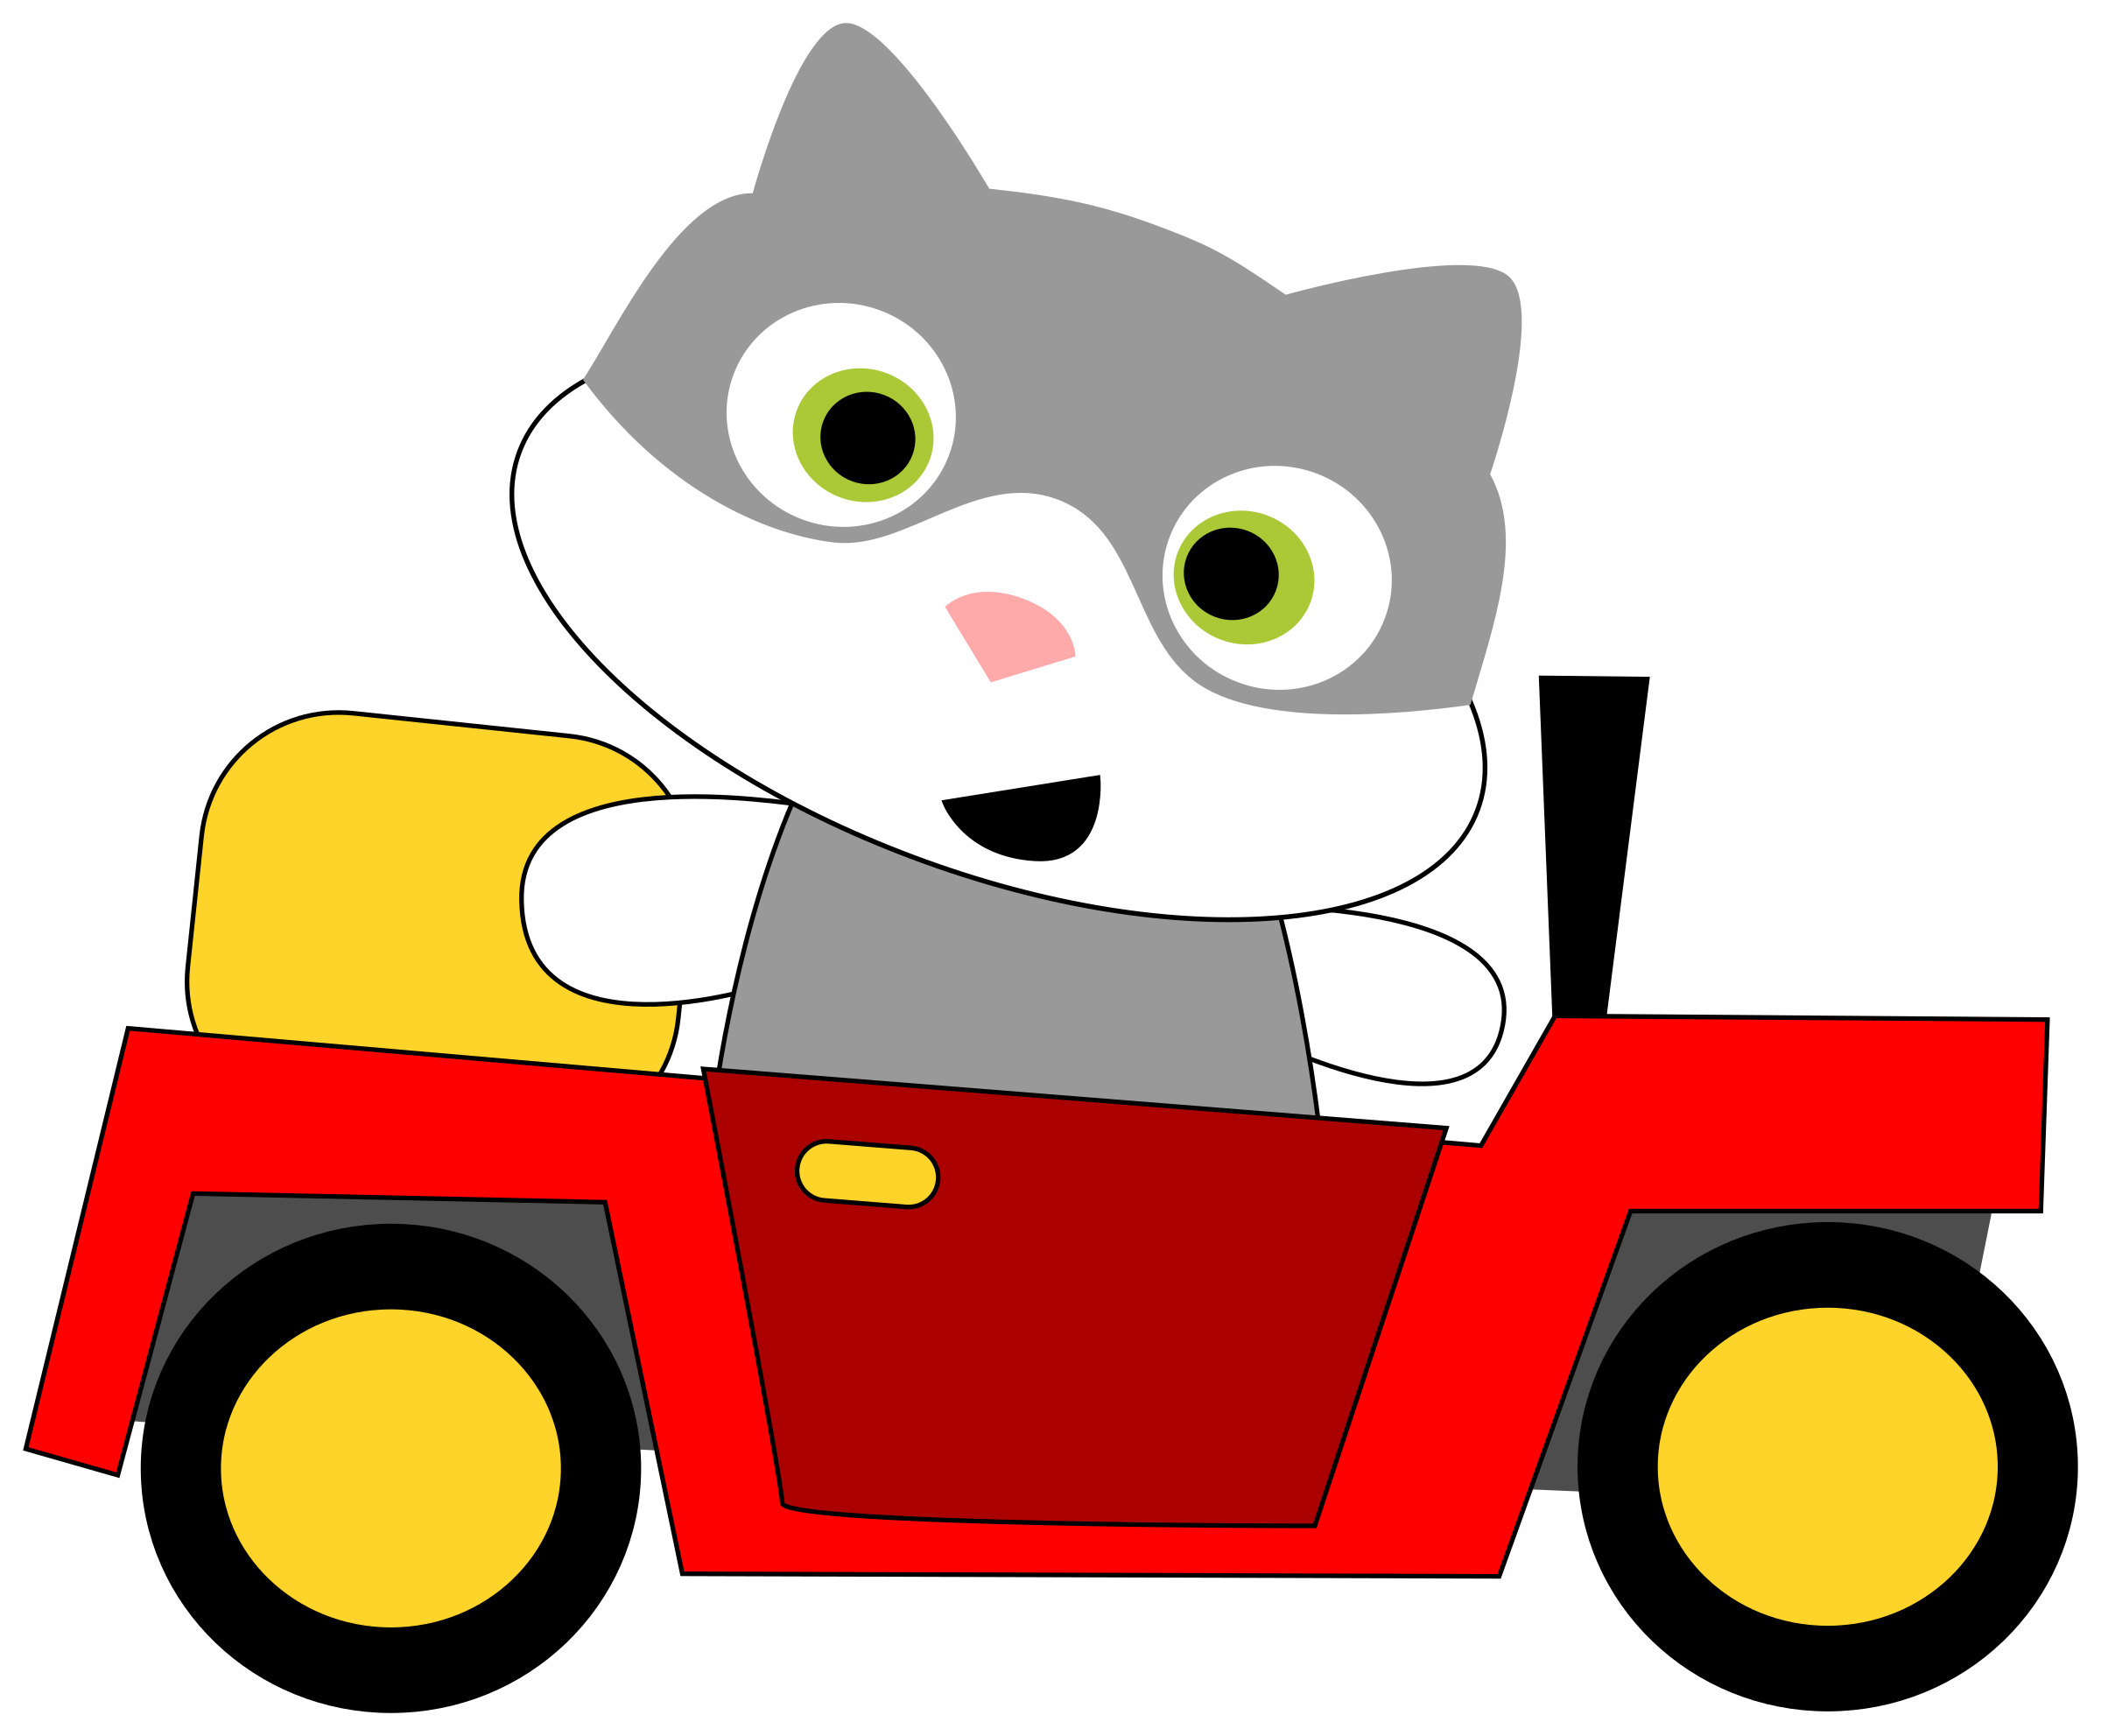 jpg freeuse download Drivers license clipart. A cat driving car.